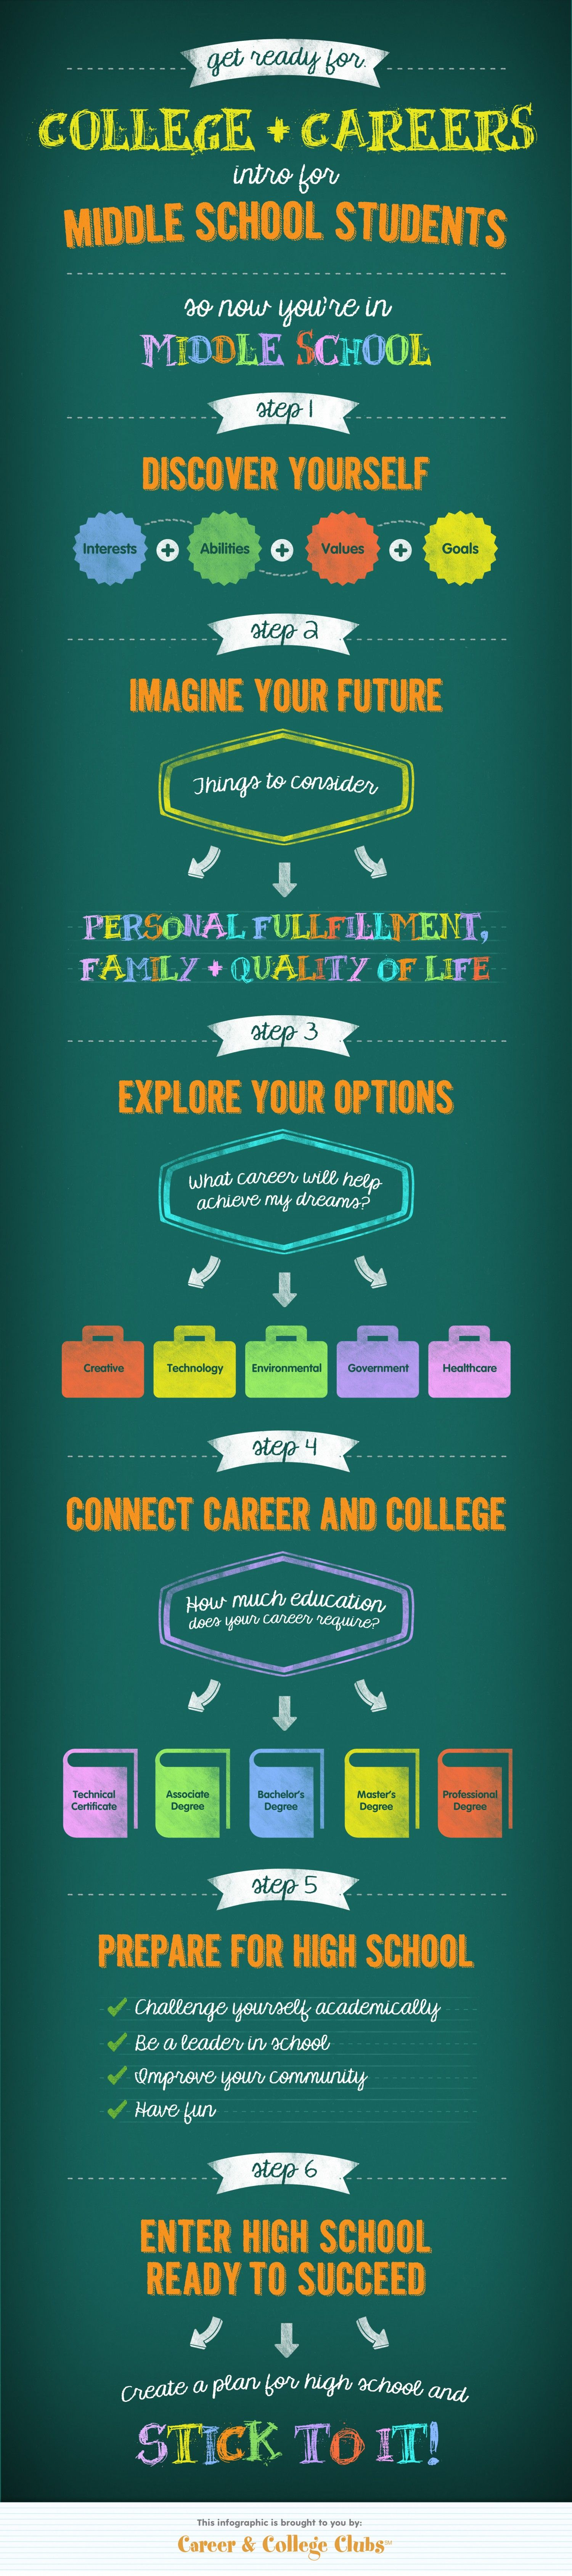 Get Ready For College Amp Careers For Middle School Students